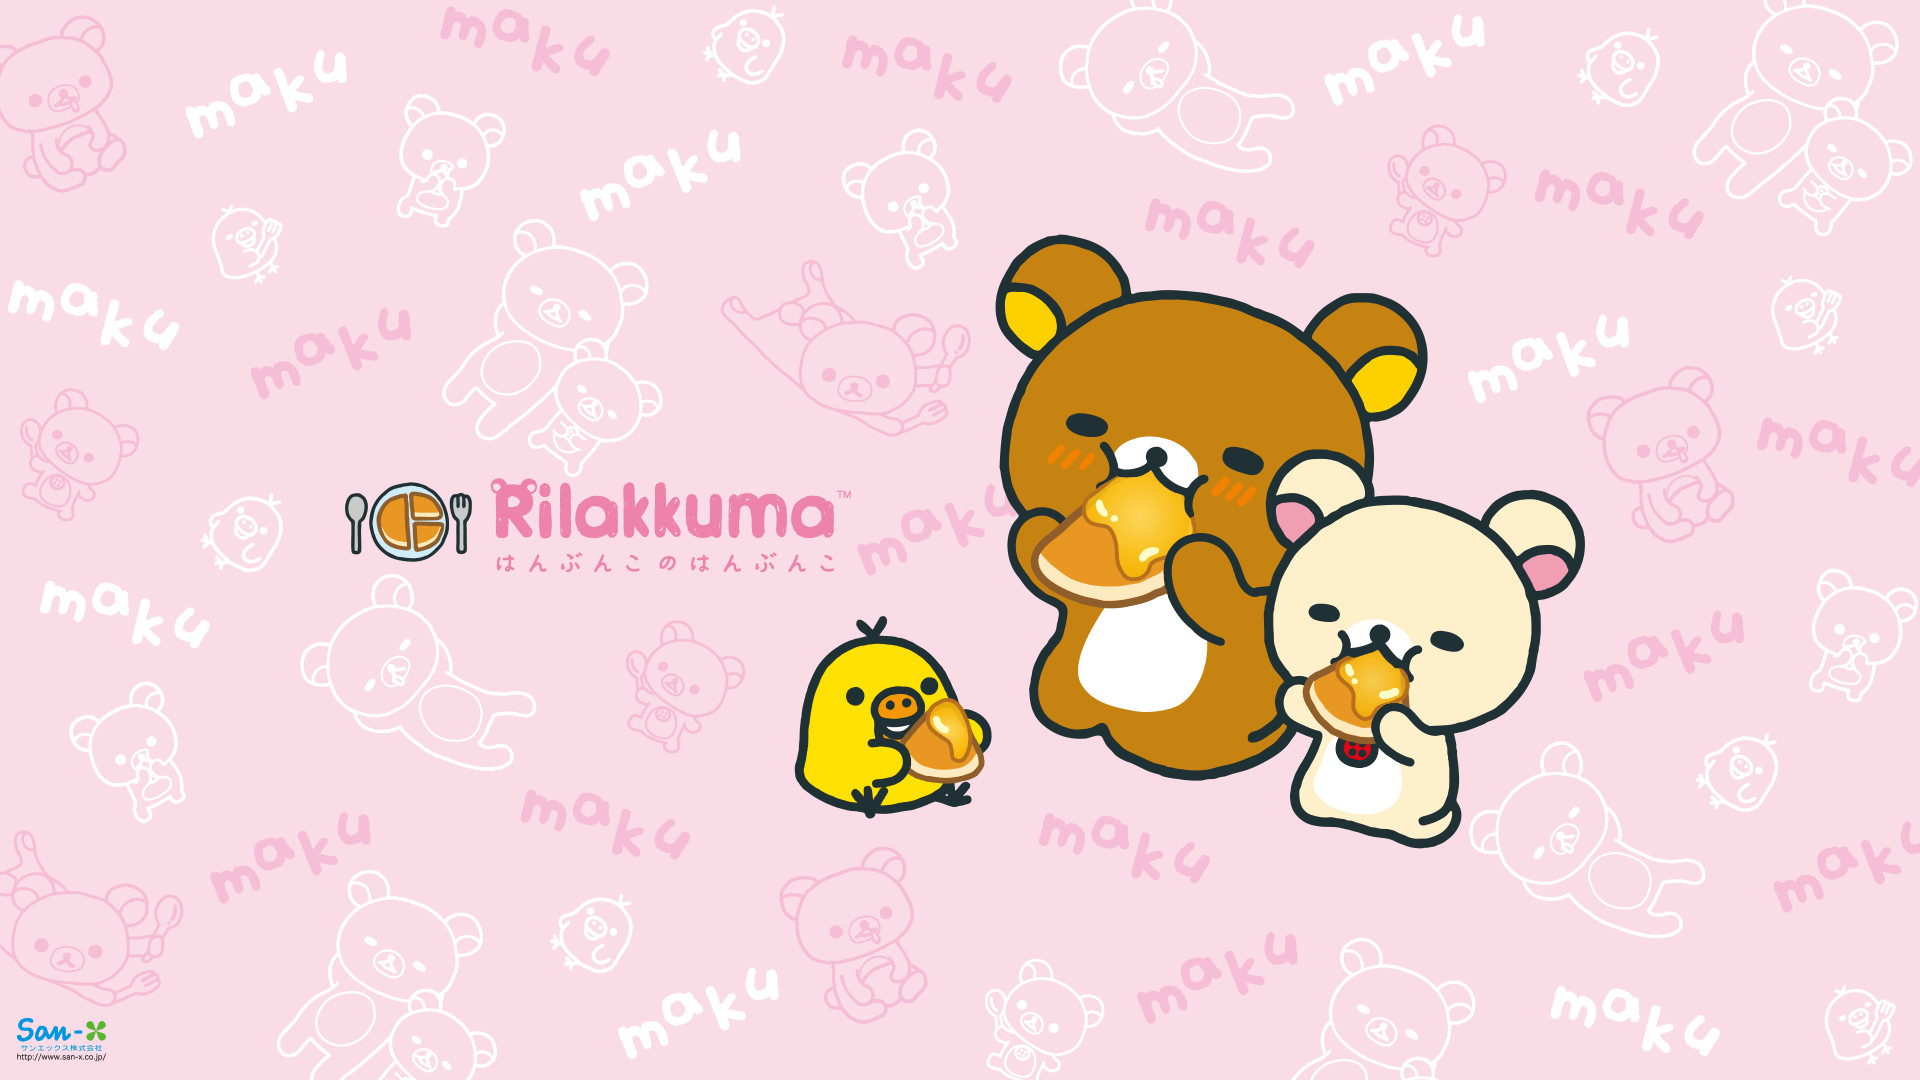 Res: 1920x1080, Hungry Rilakkuma Wallpaper